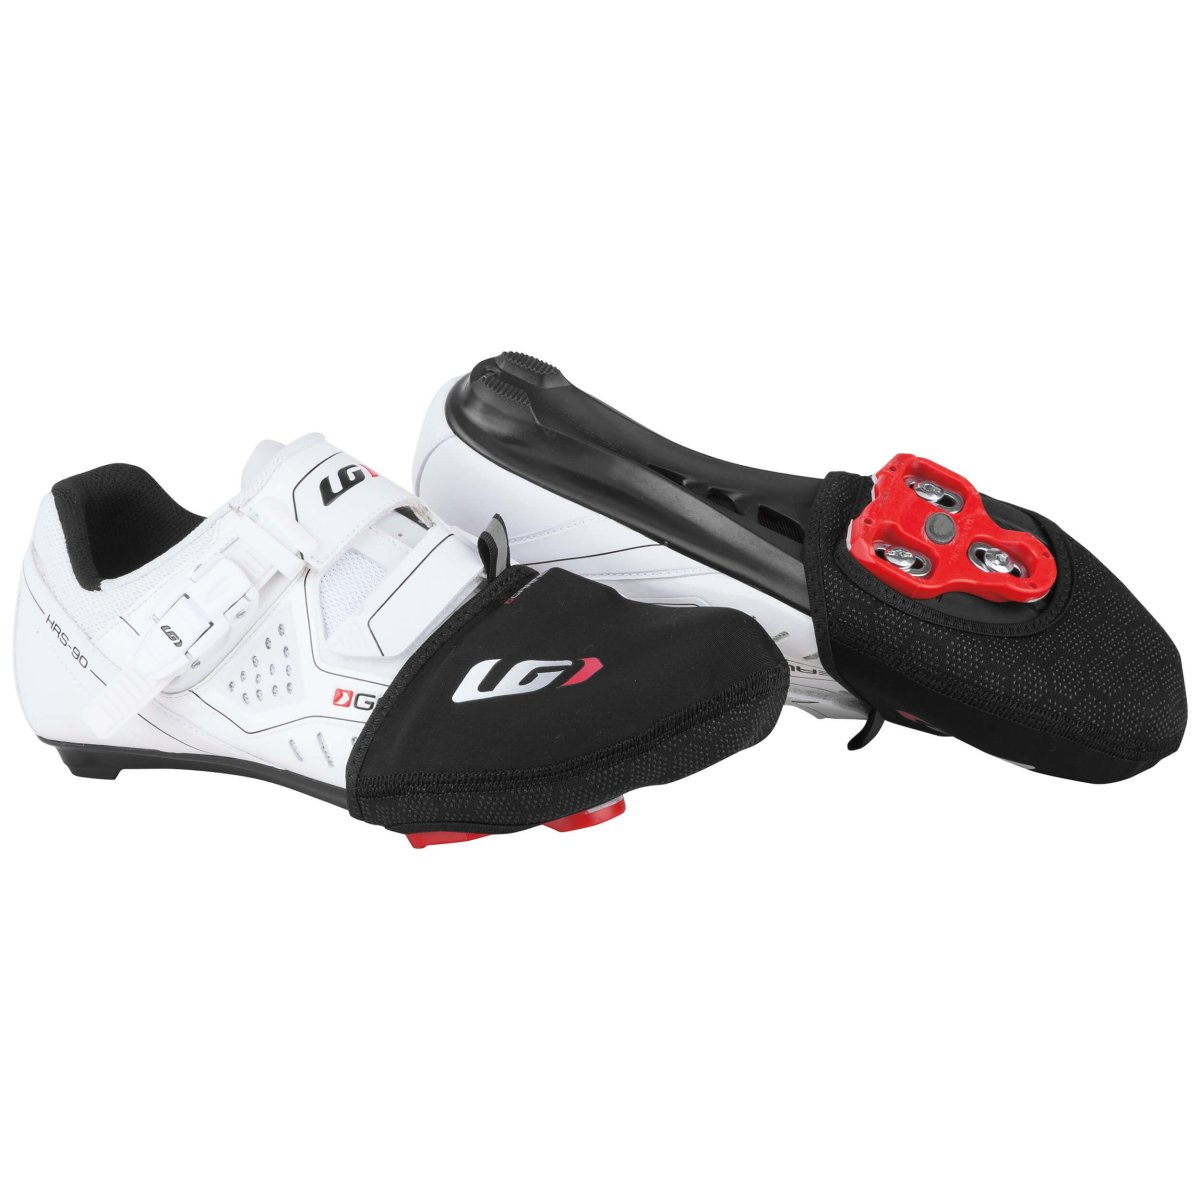 Бахилы на носок Garneau Toe Thermal Cycling Toe Covers 1083178 020 M